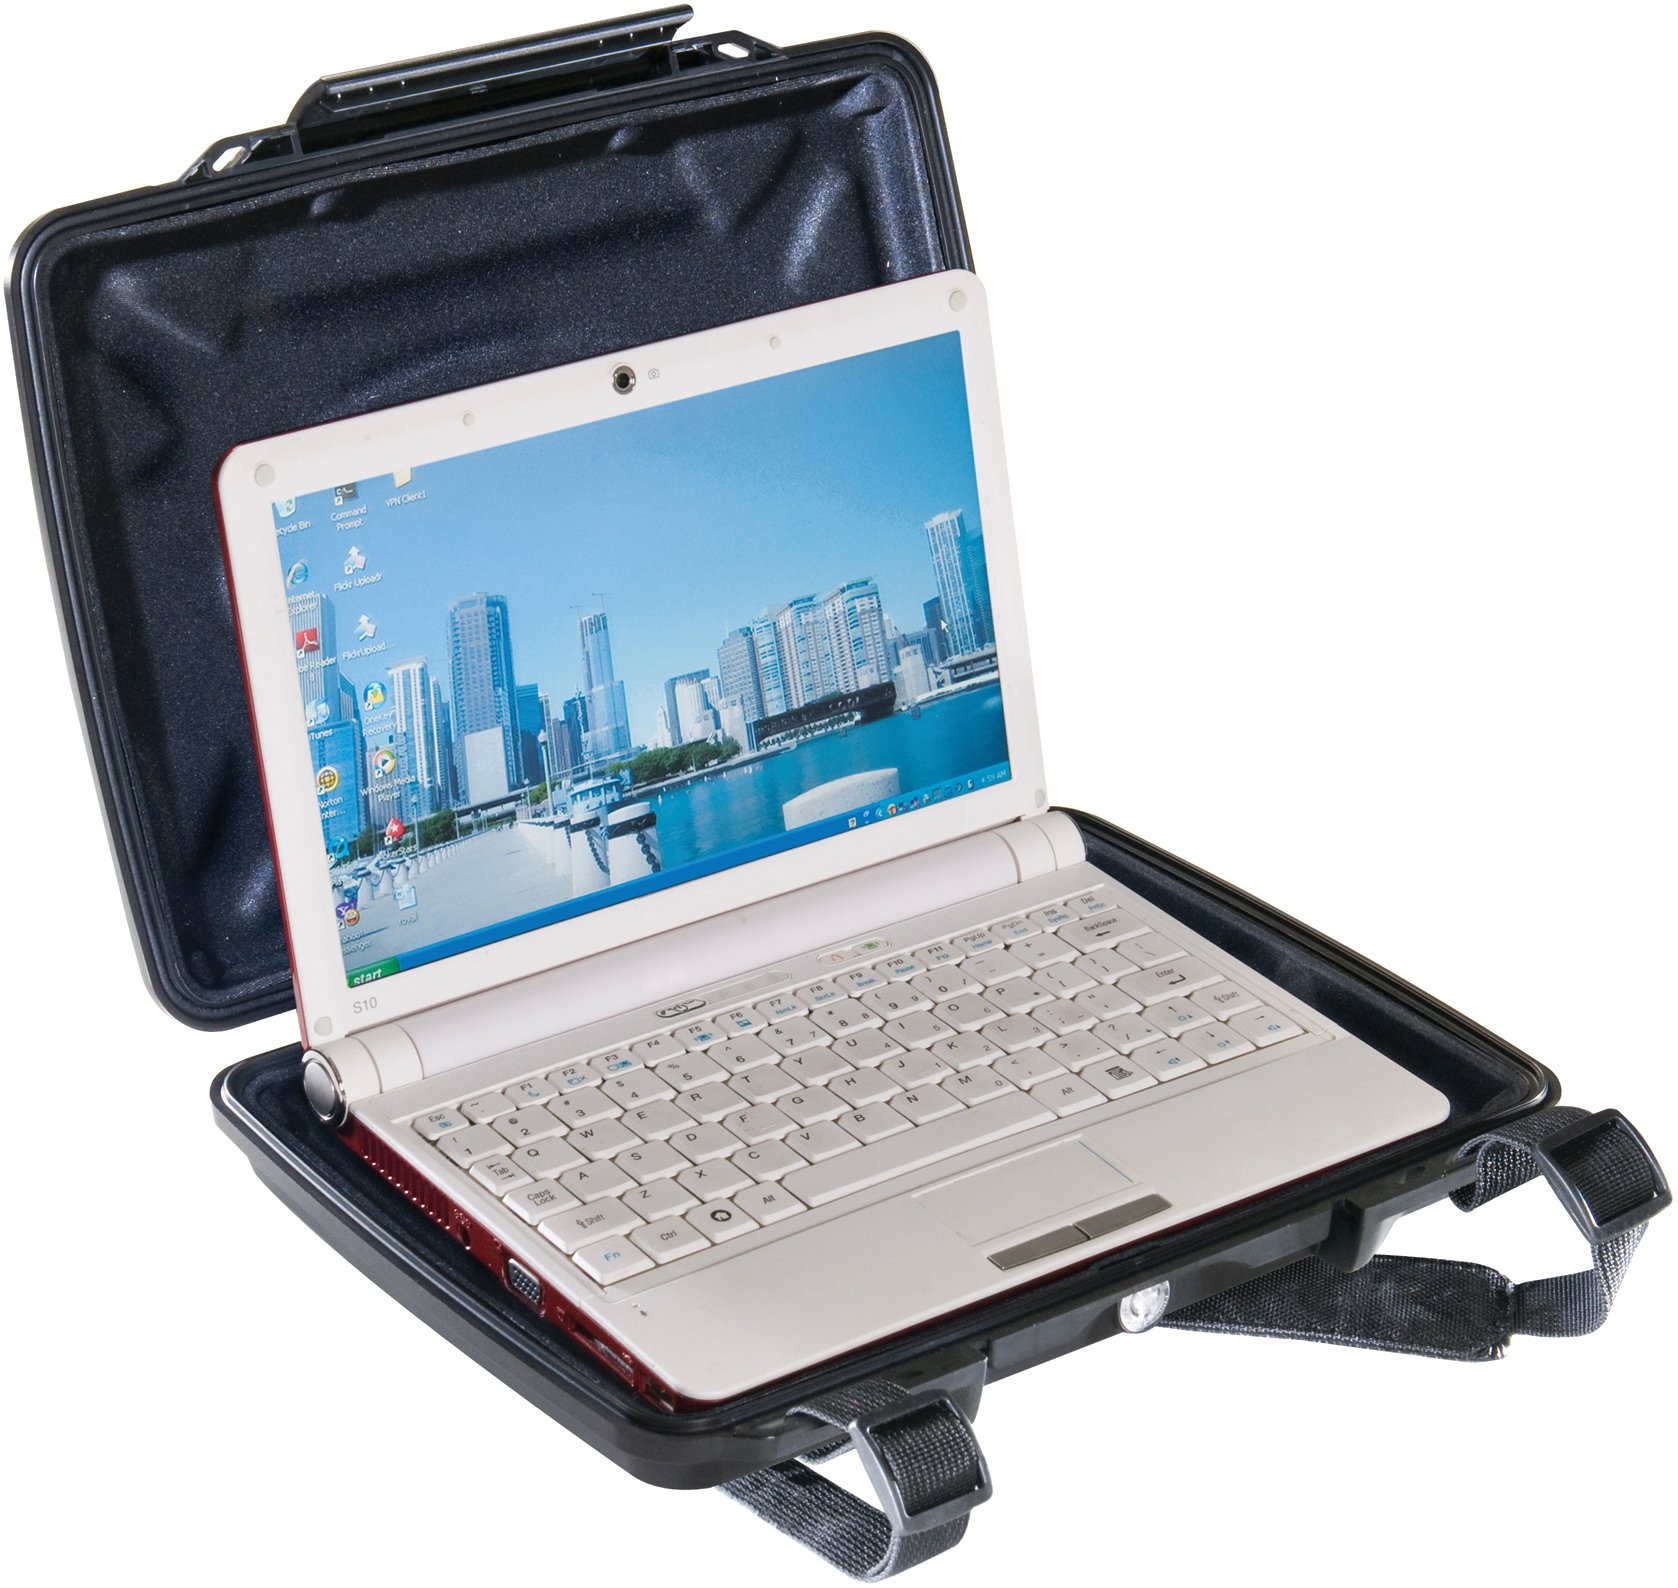 Pelican 1075 Laptop Case With Foam by Pelican (Image #3)